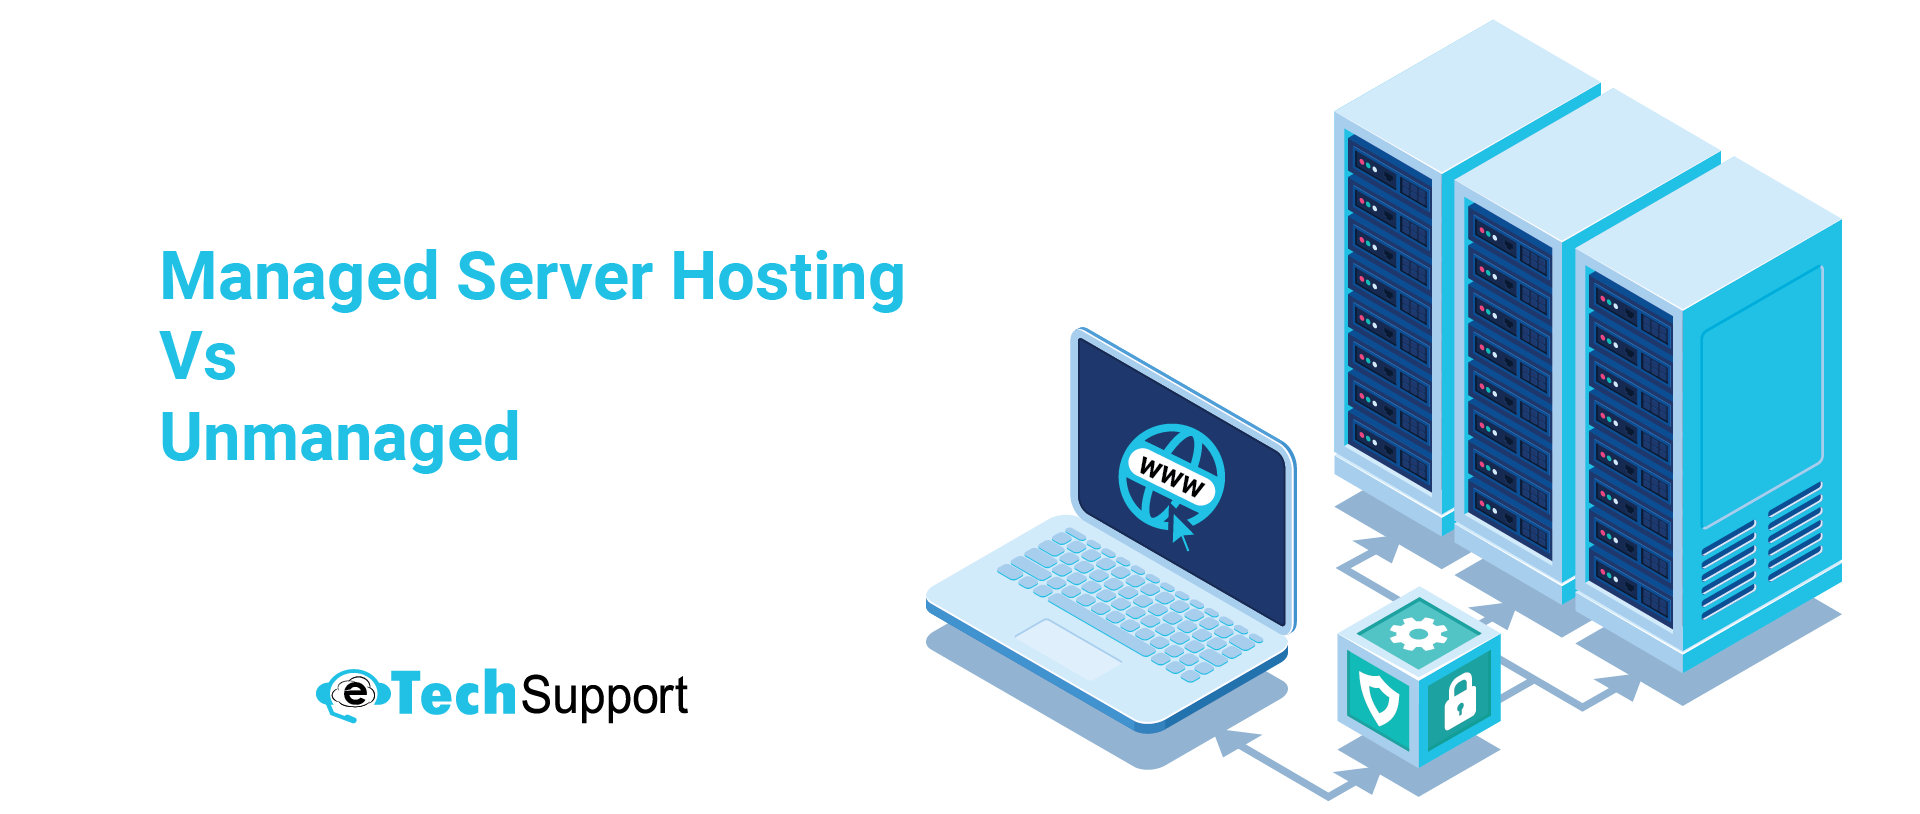 Managed-Server-Hosting-vs-Unmanaged